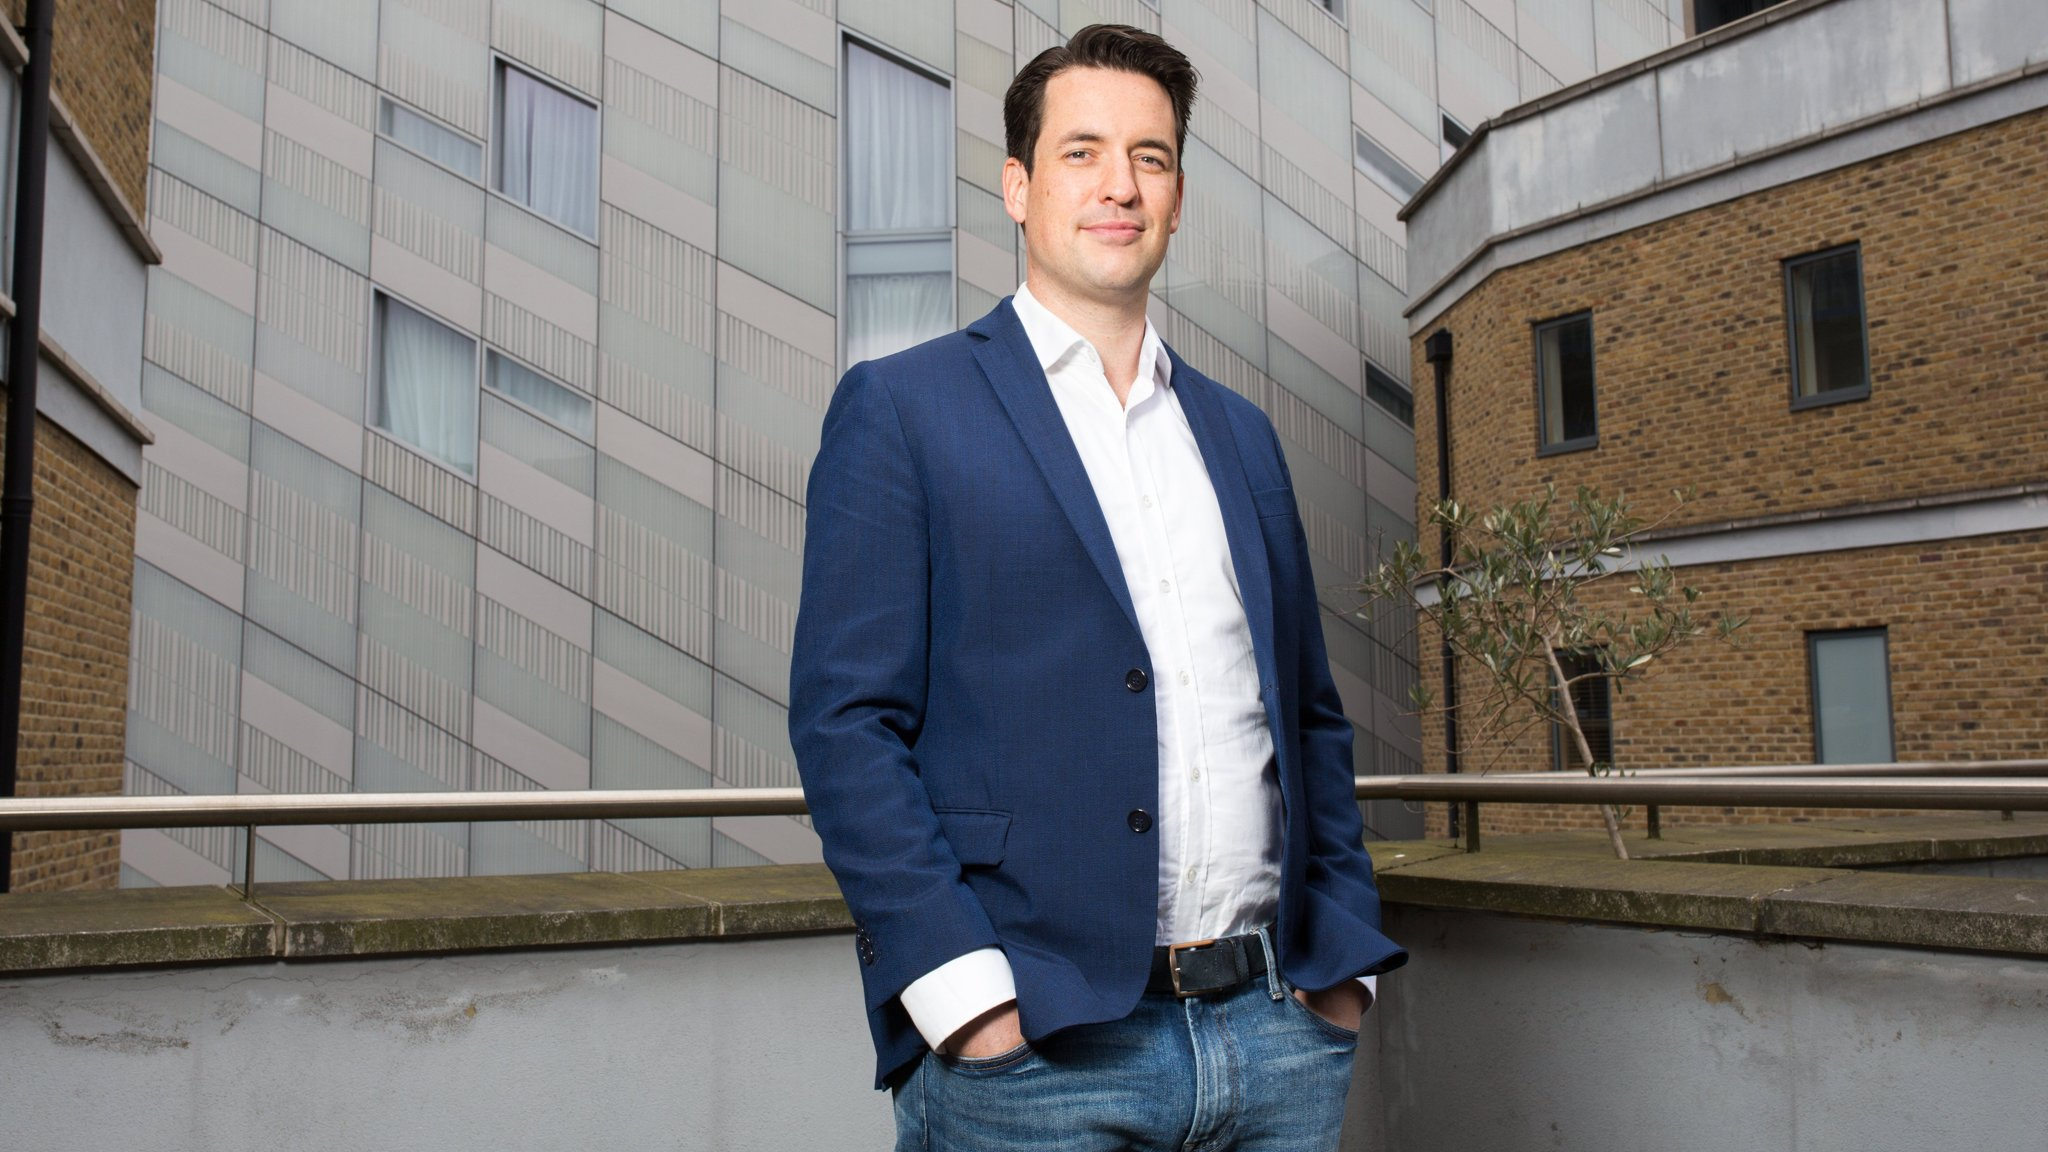 Artificial intelligence closes in on the work of junior lawyers